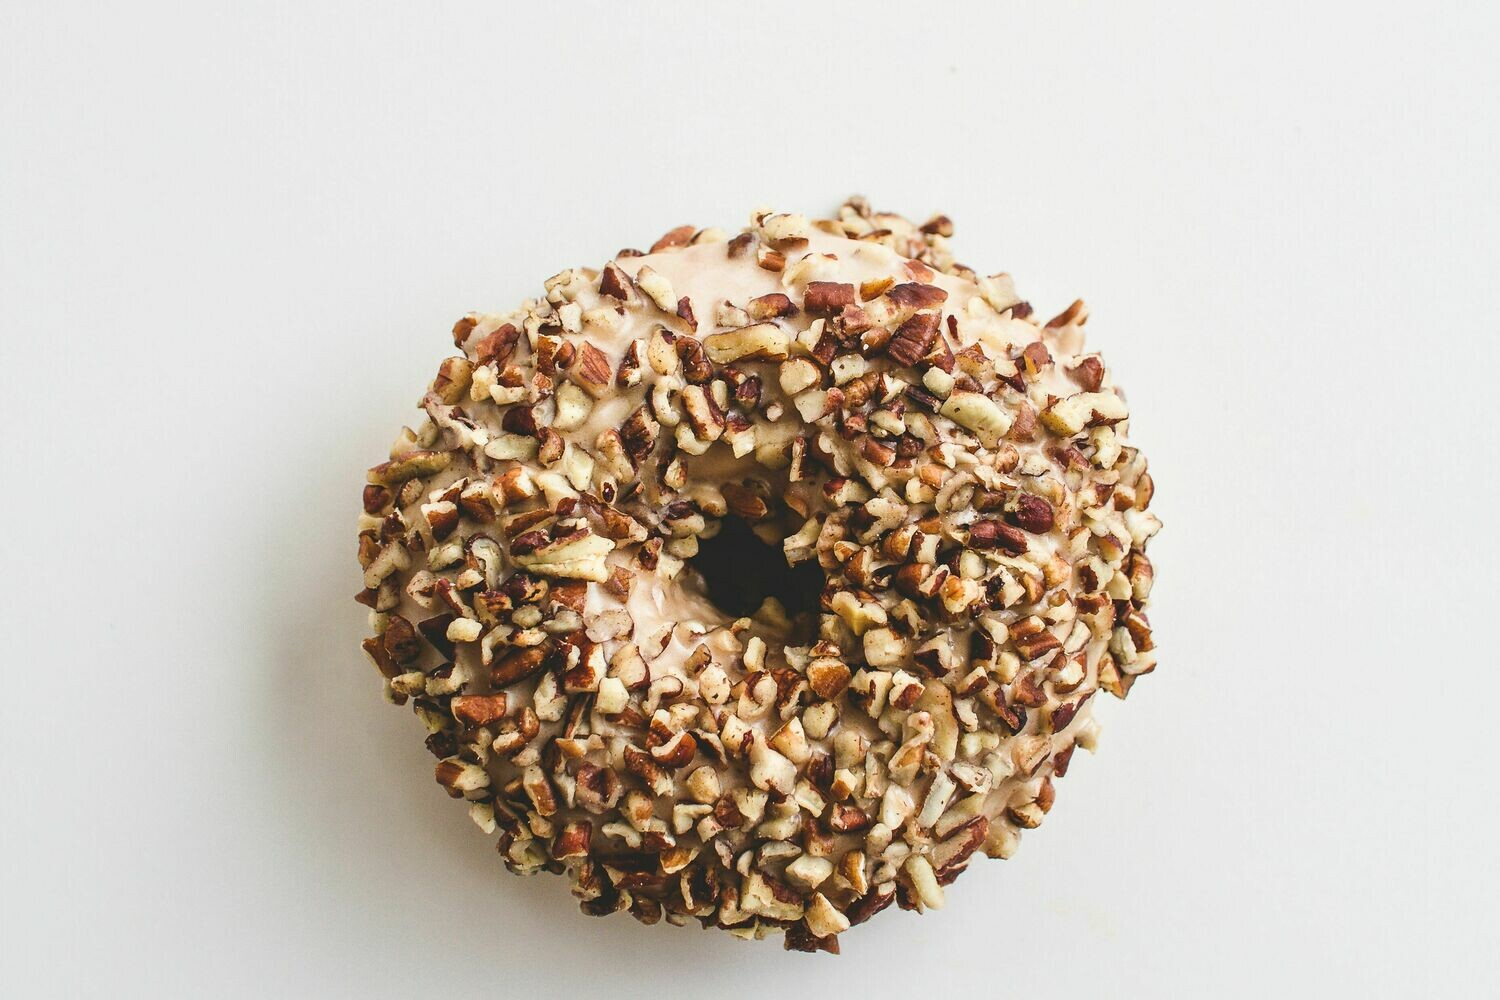 Yeast Donut, Maple Icing, Crushed Pecans (Single Donut)